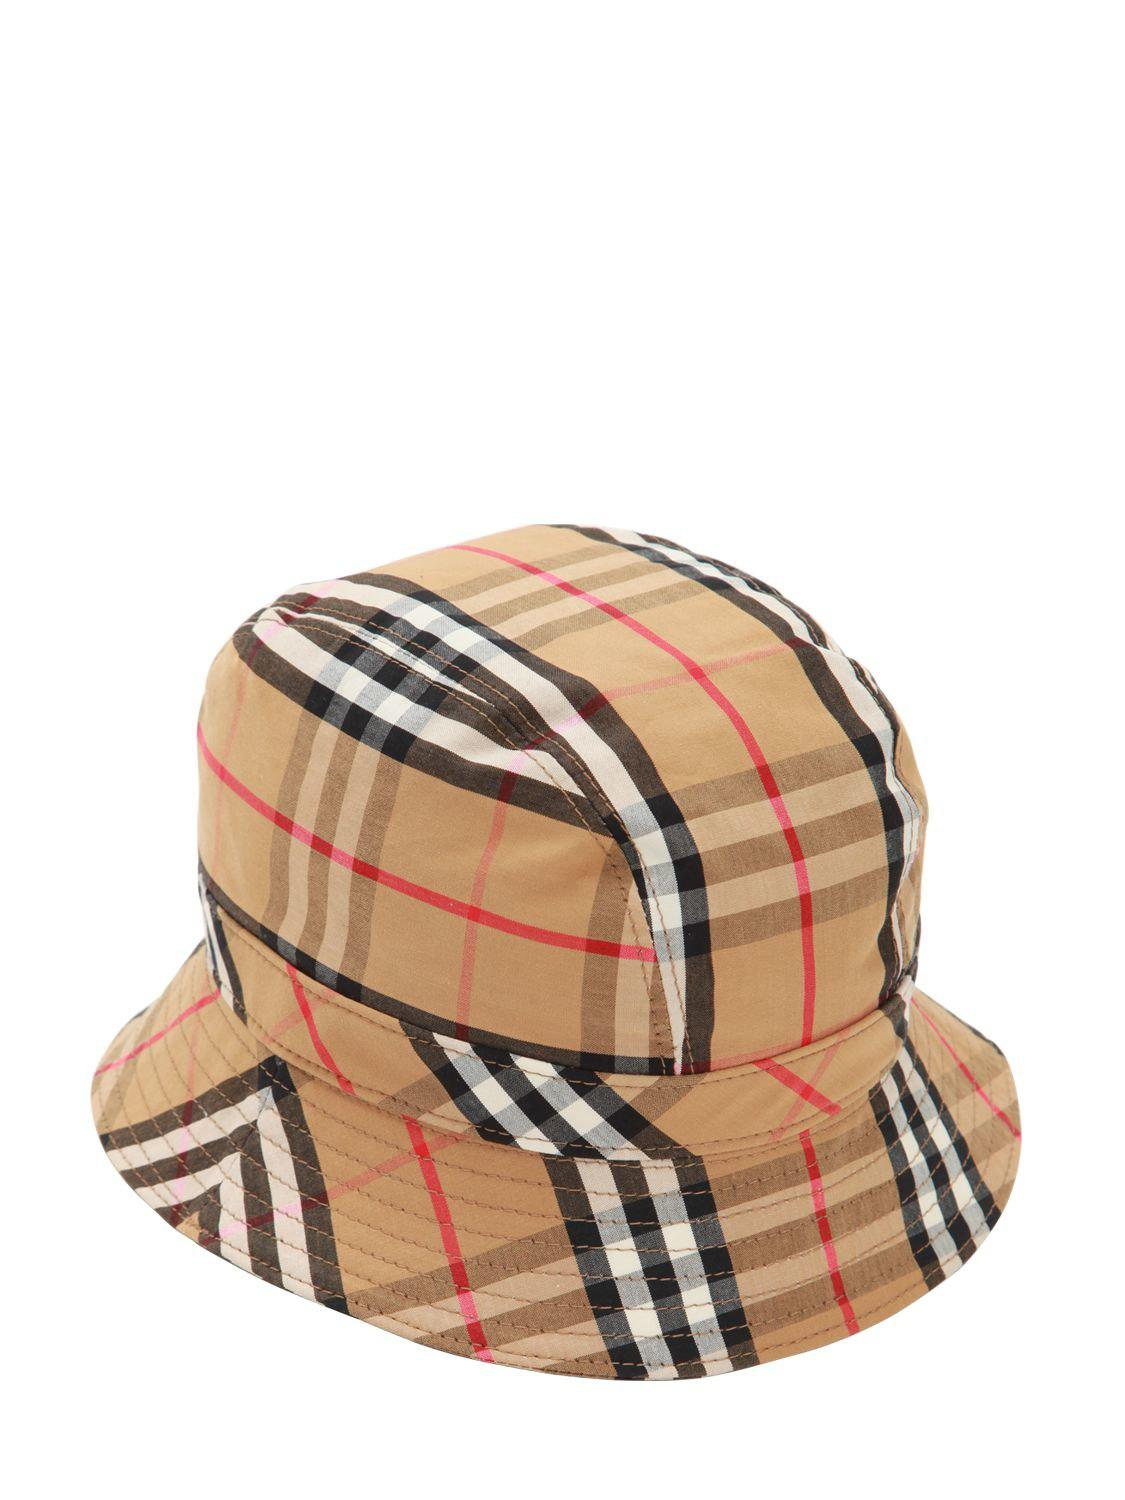 Burberry - Multicolor Vintage Check Cotton Bucket Hat for Men - Lyst. View  fullscreen 89ee486c29d